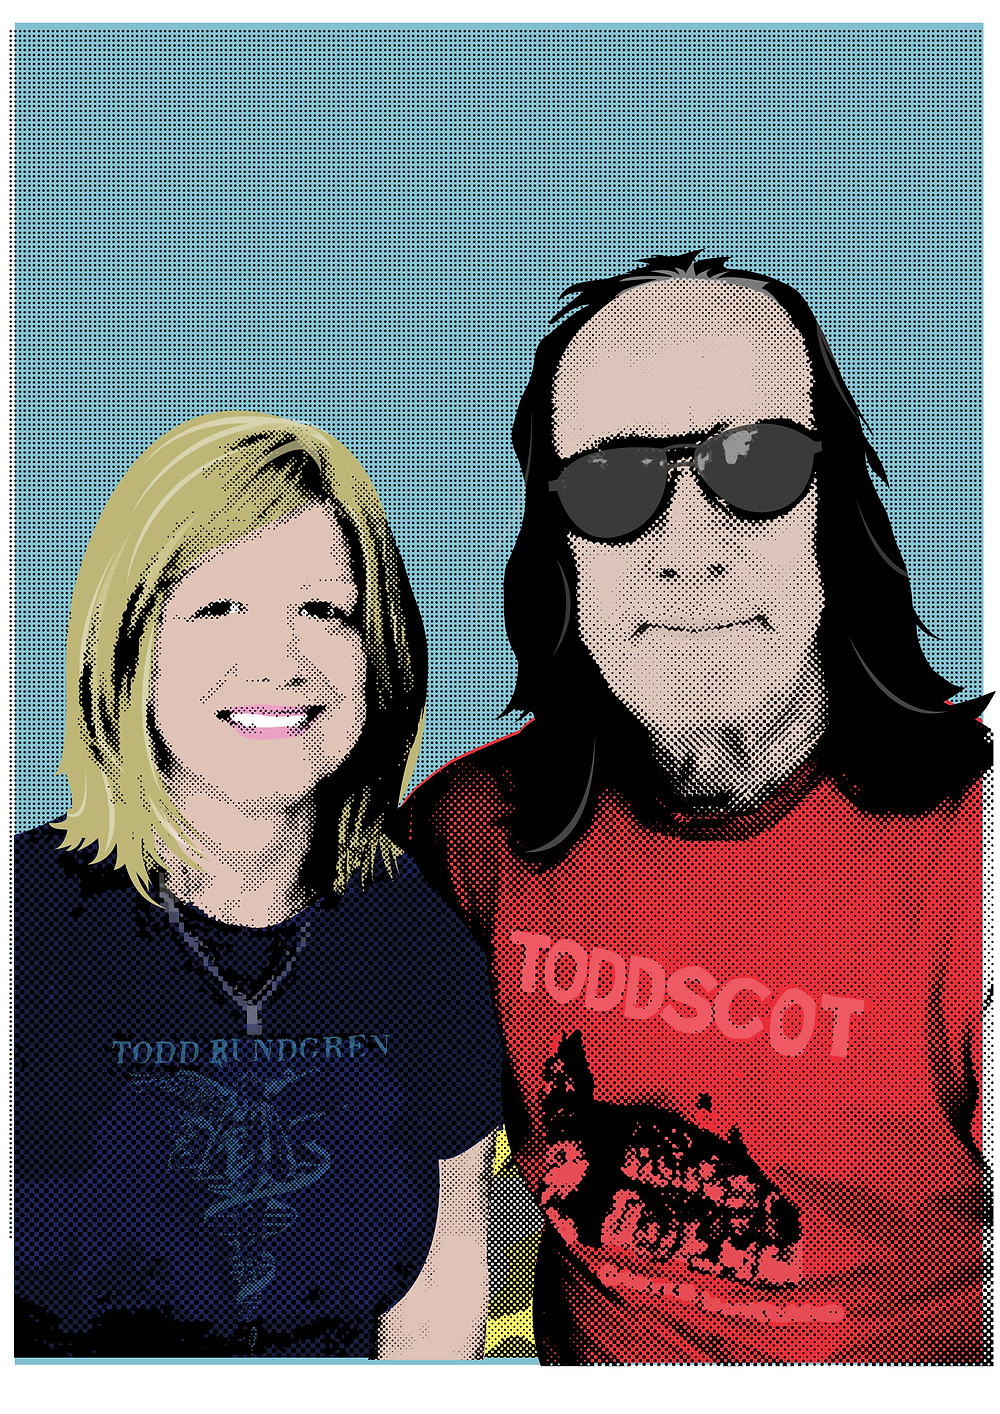 Delighted to be commissioned by Bev Rigby to create this image of her and the ledge Todd Rundgren. Provide me with a good quality photo of you and your favourite 70's rocker, and this could be you.